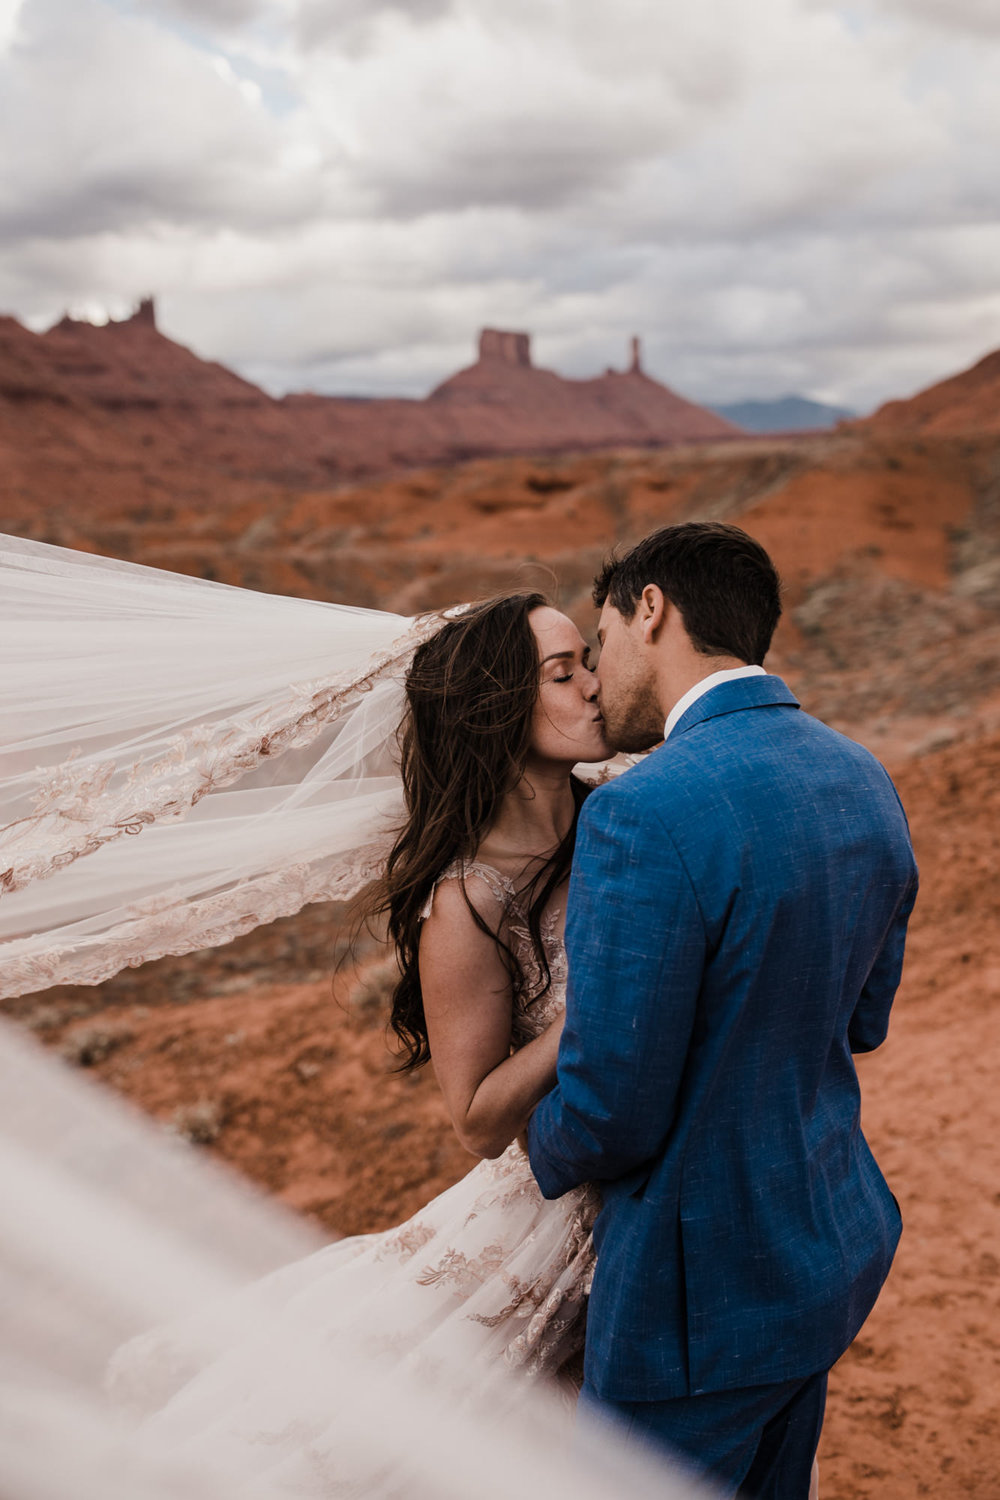 windy elopement in the moab, utah desert | destination adventure wedding photographers | the hearnes adventure photography | www.thehearnes.com